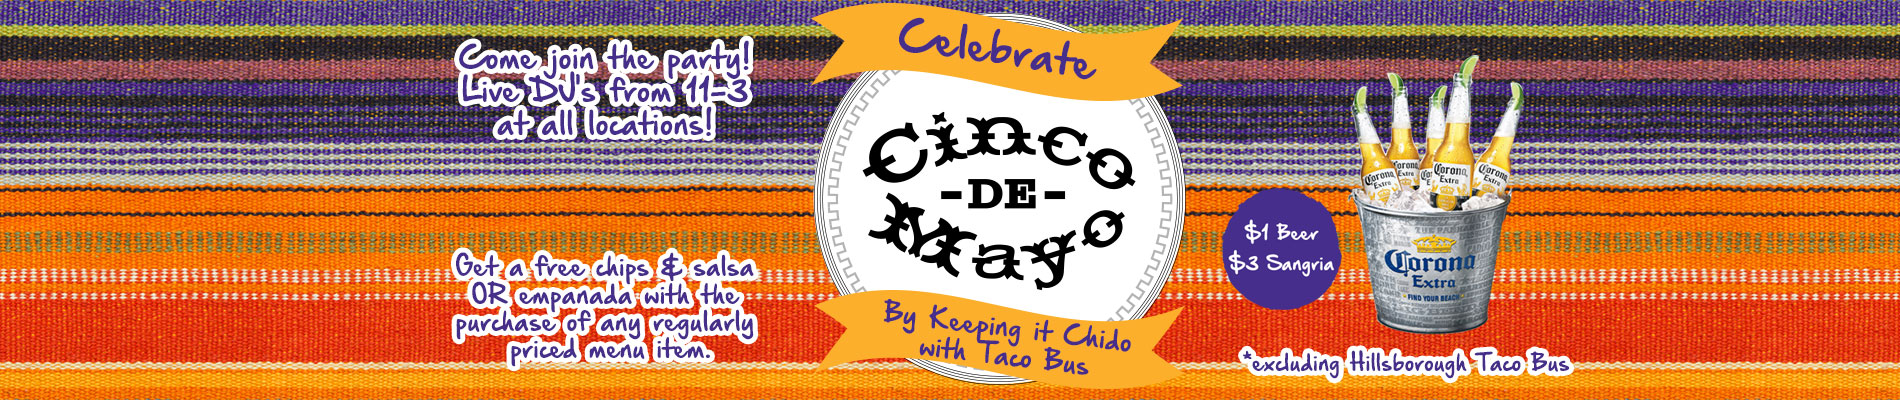 CincoDeMayo-Web-Banner_slider-1